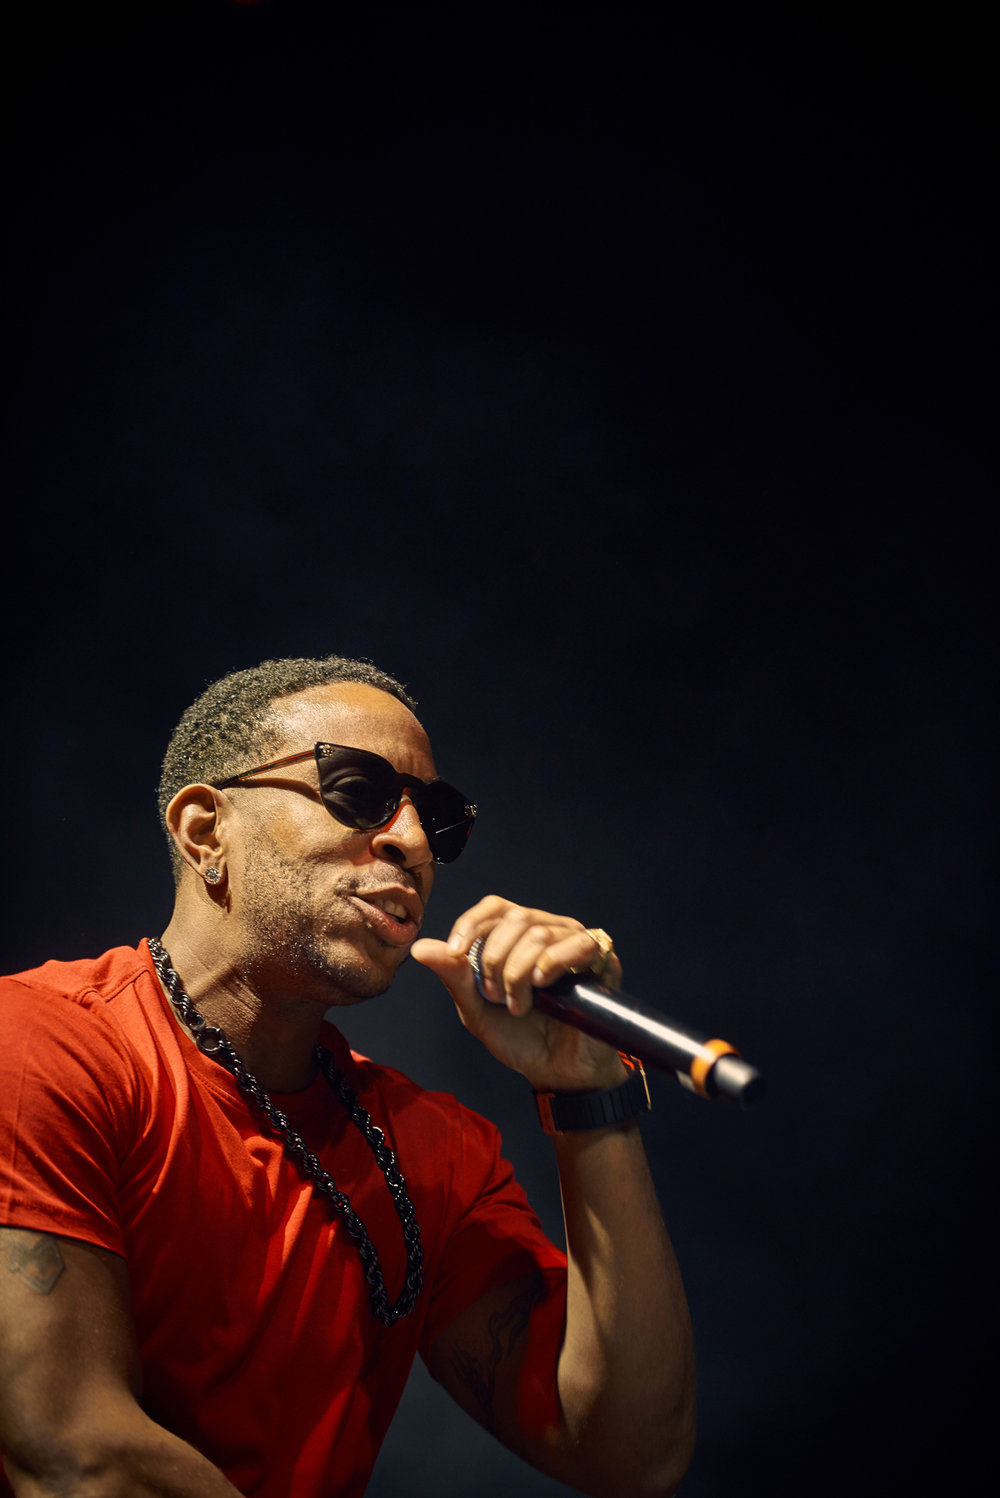 LLL_3300_Ludacris-Live-at-Eventim-Apollo-March-2017.jpg